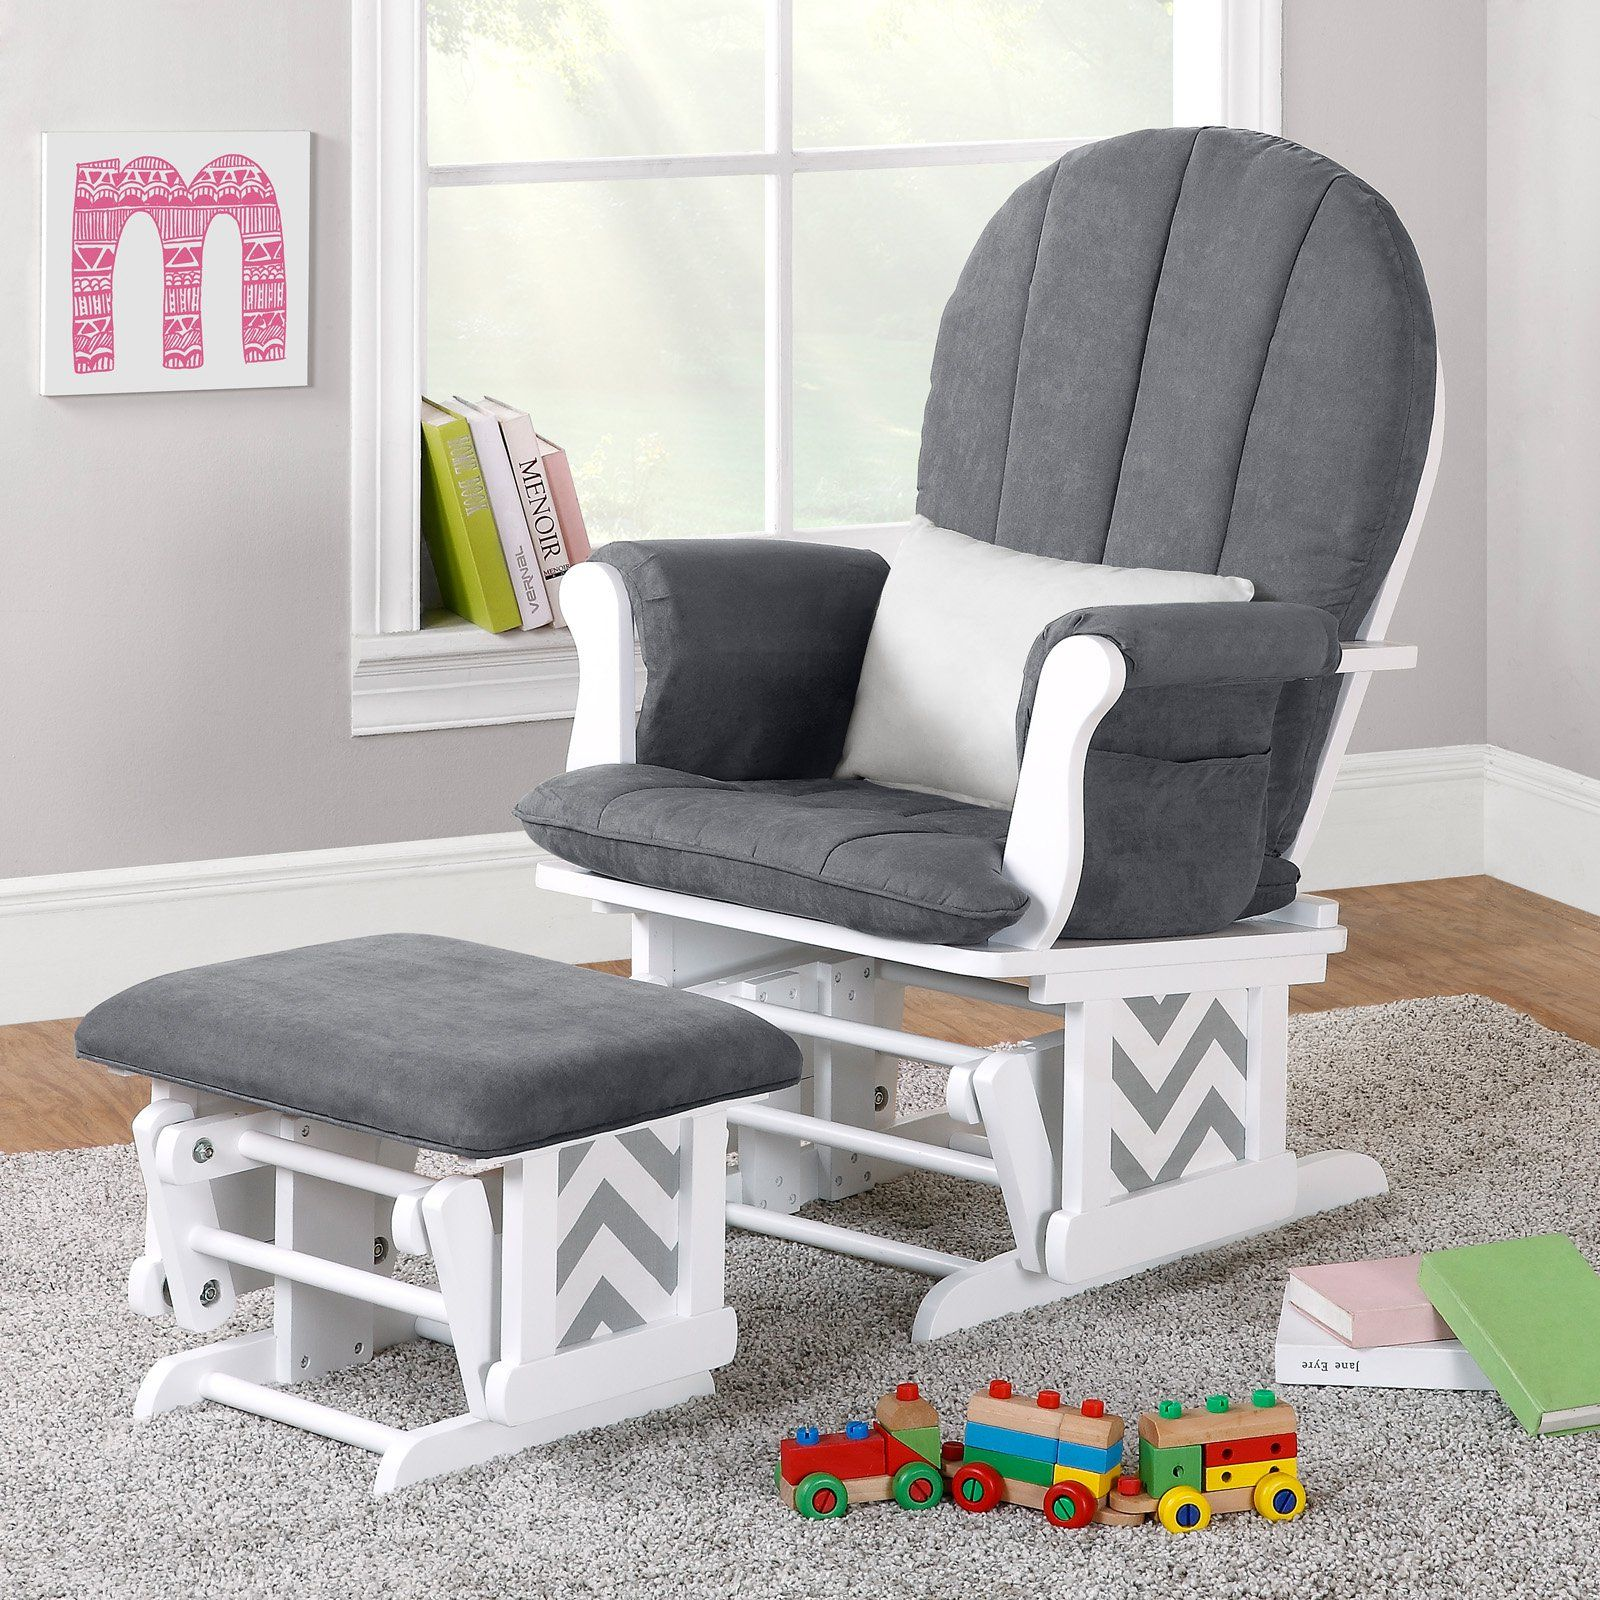 Baby Nursery Chairs How To Decorate Babies And Moms Heaven Home Decor Rocking